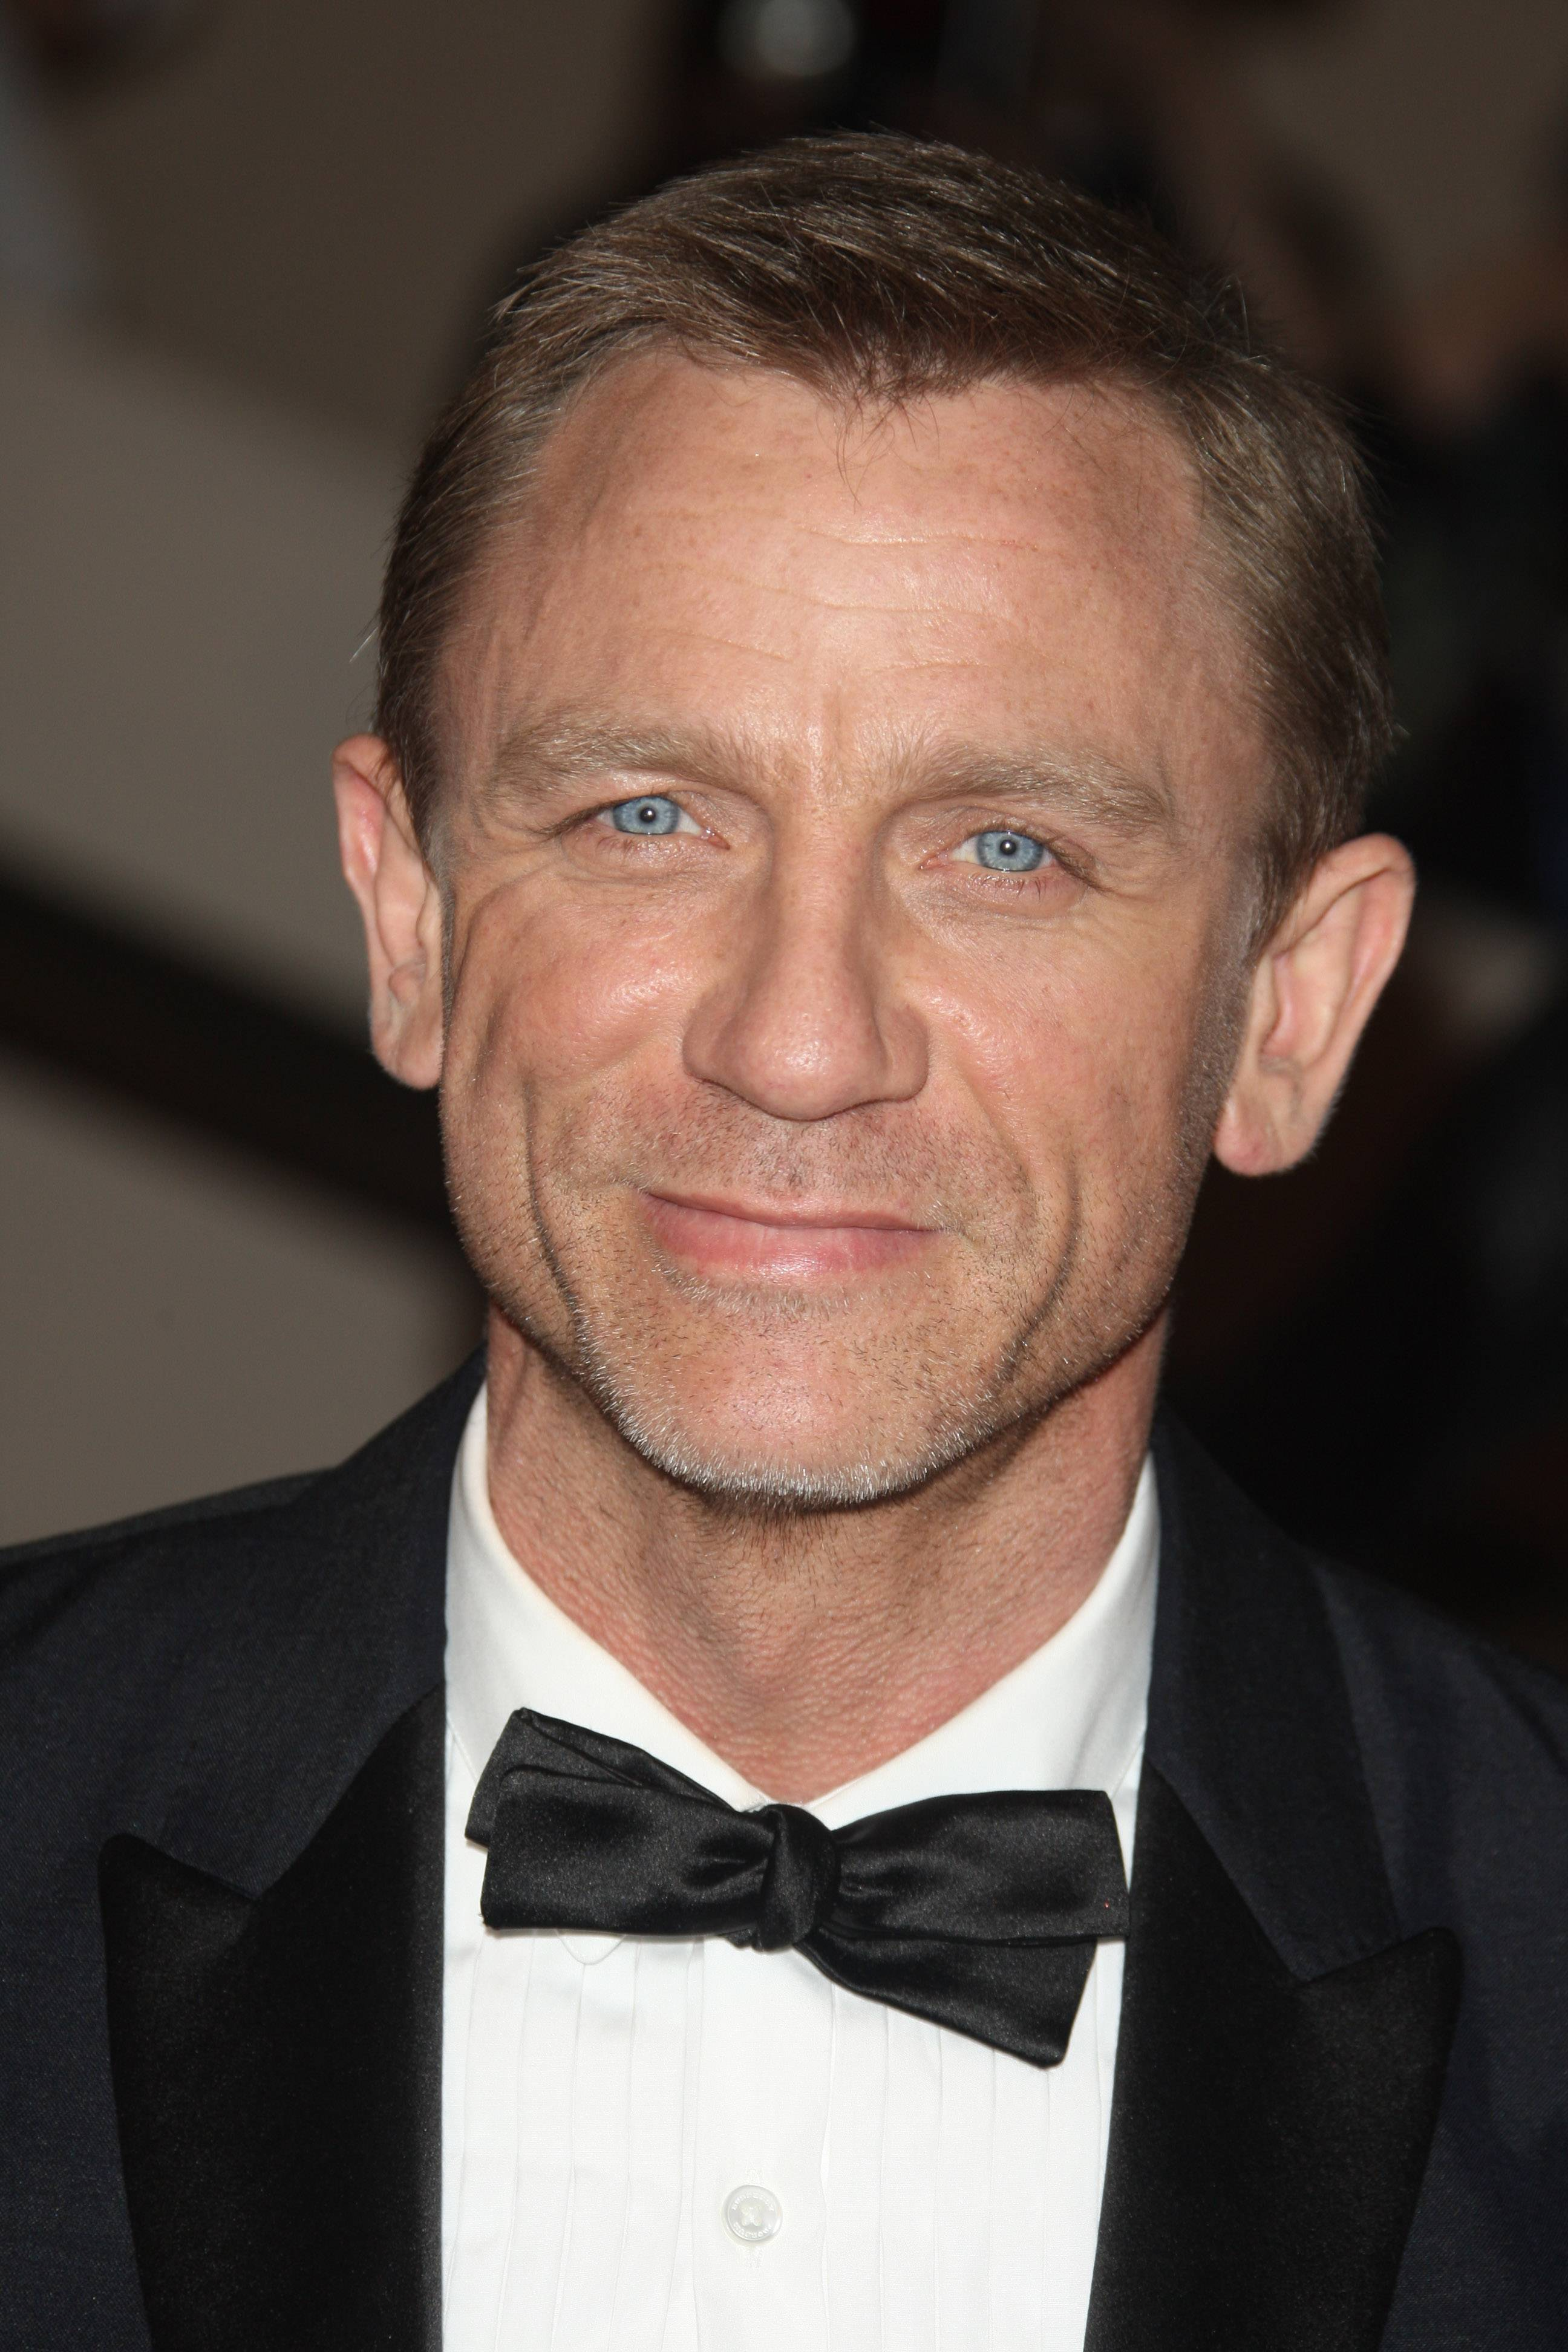 Daniel Craig and Rachel Weisz married after quietly dating.